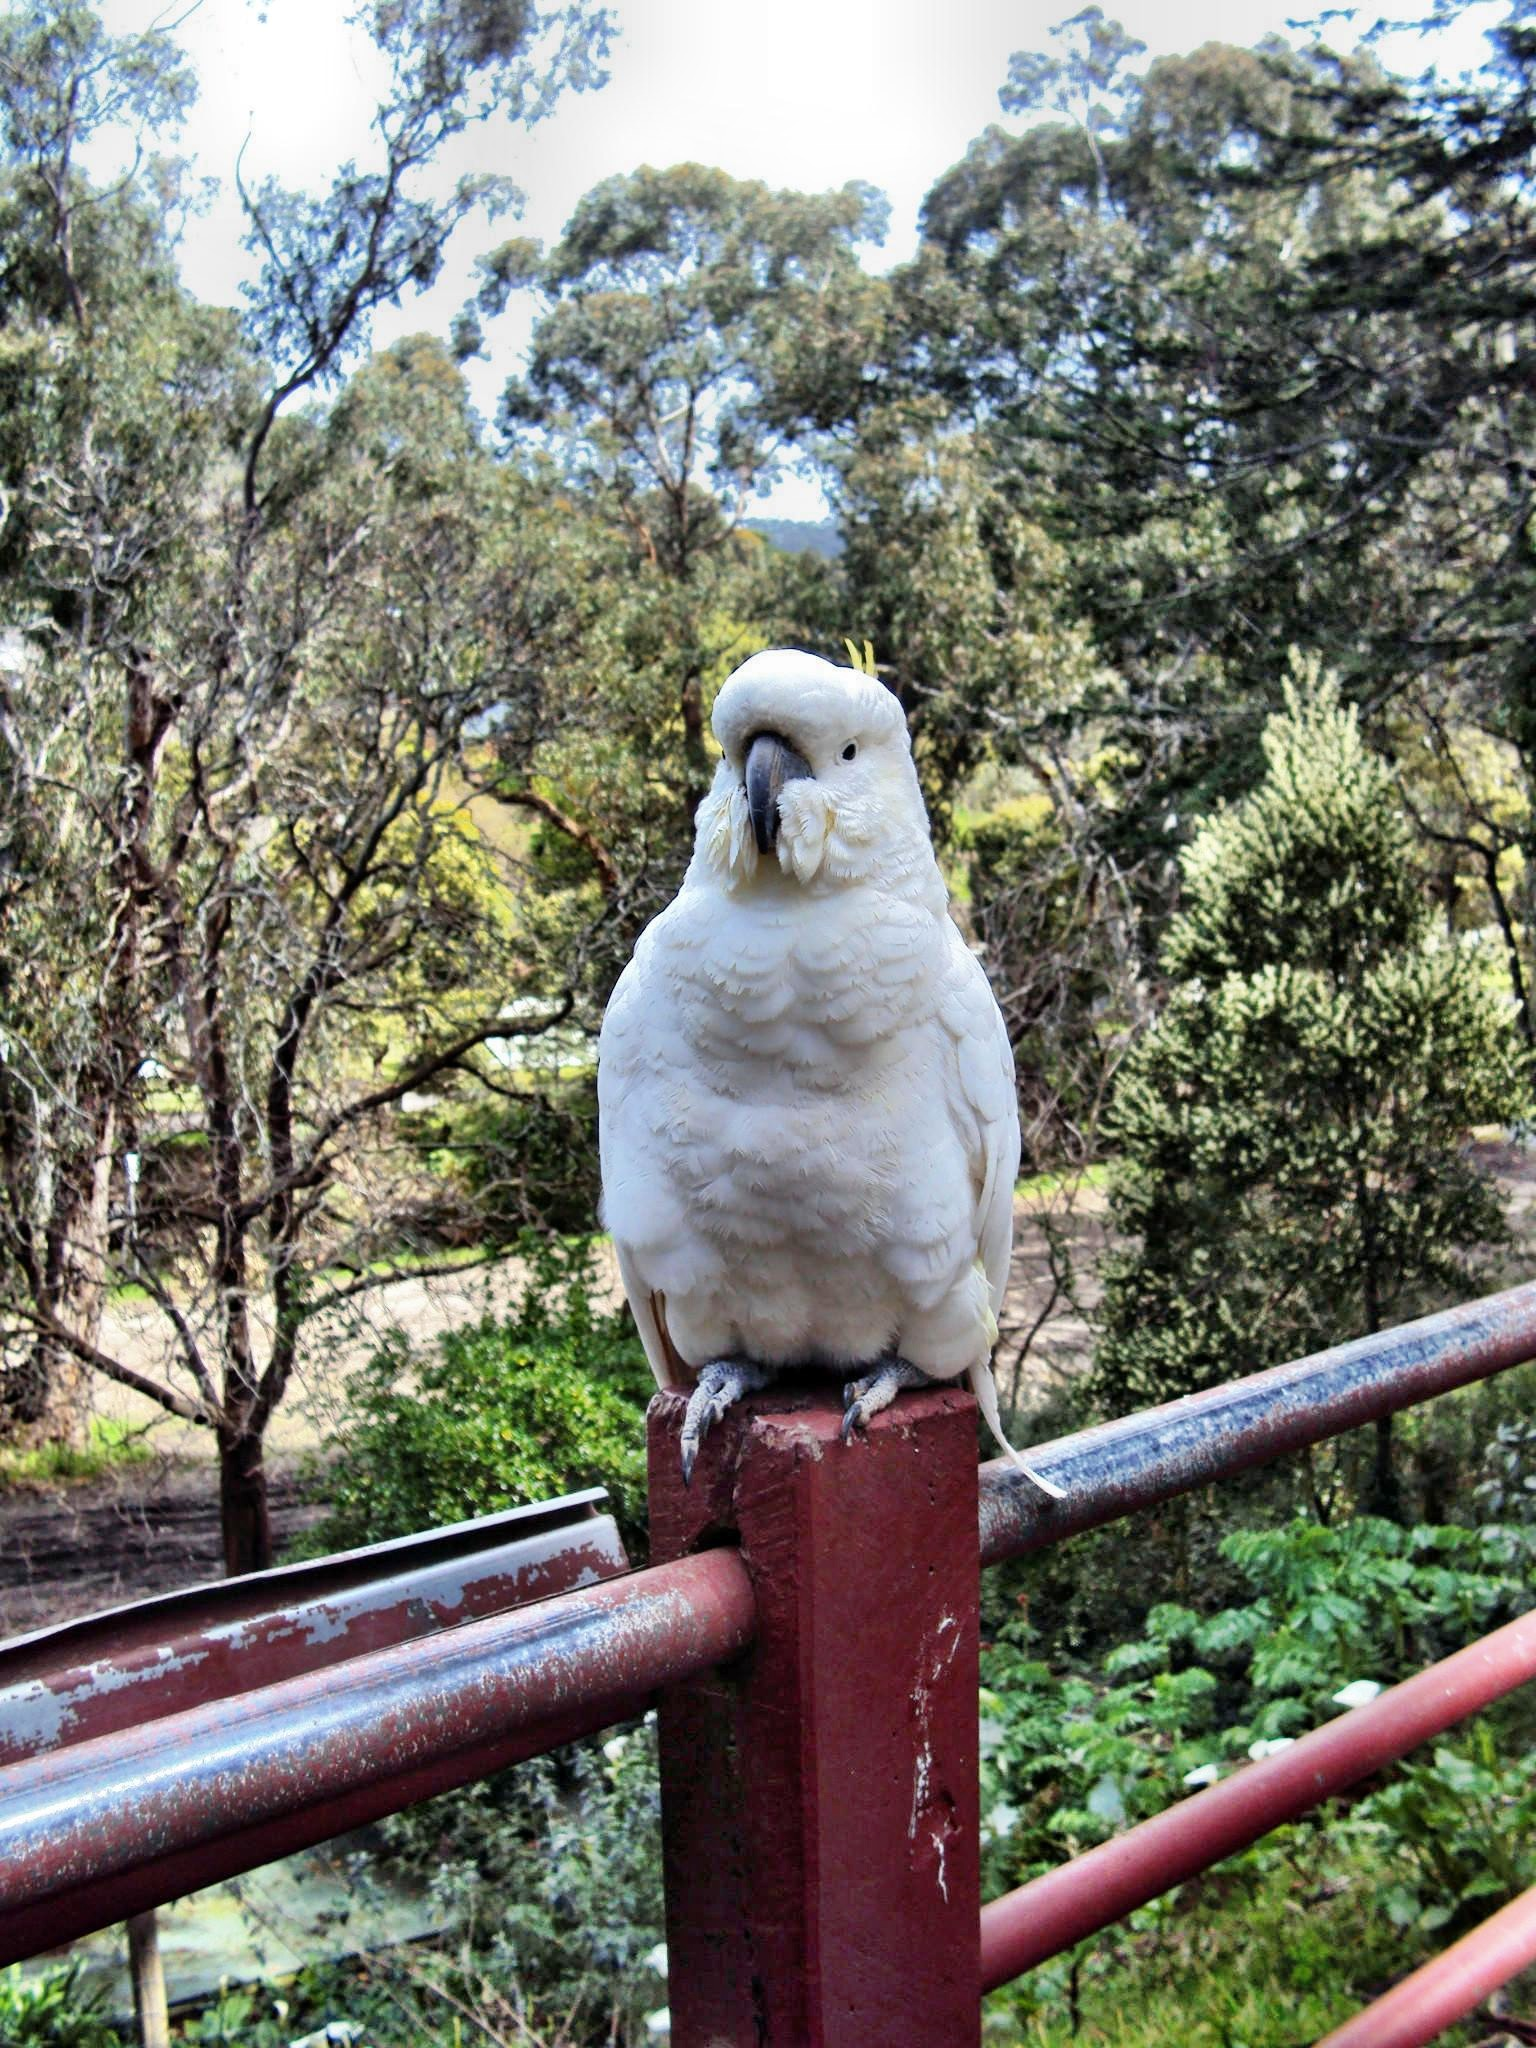 This should be Cockatoo-1.jpeg.  Is it missing?